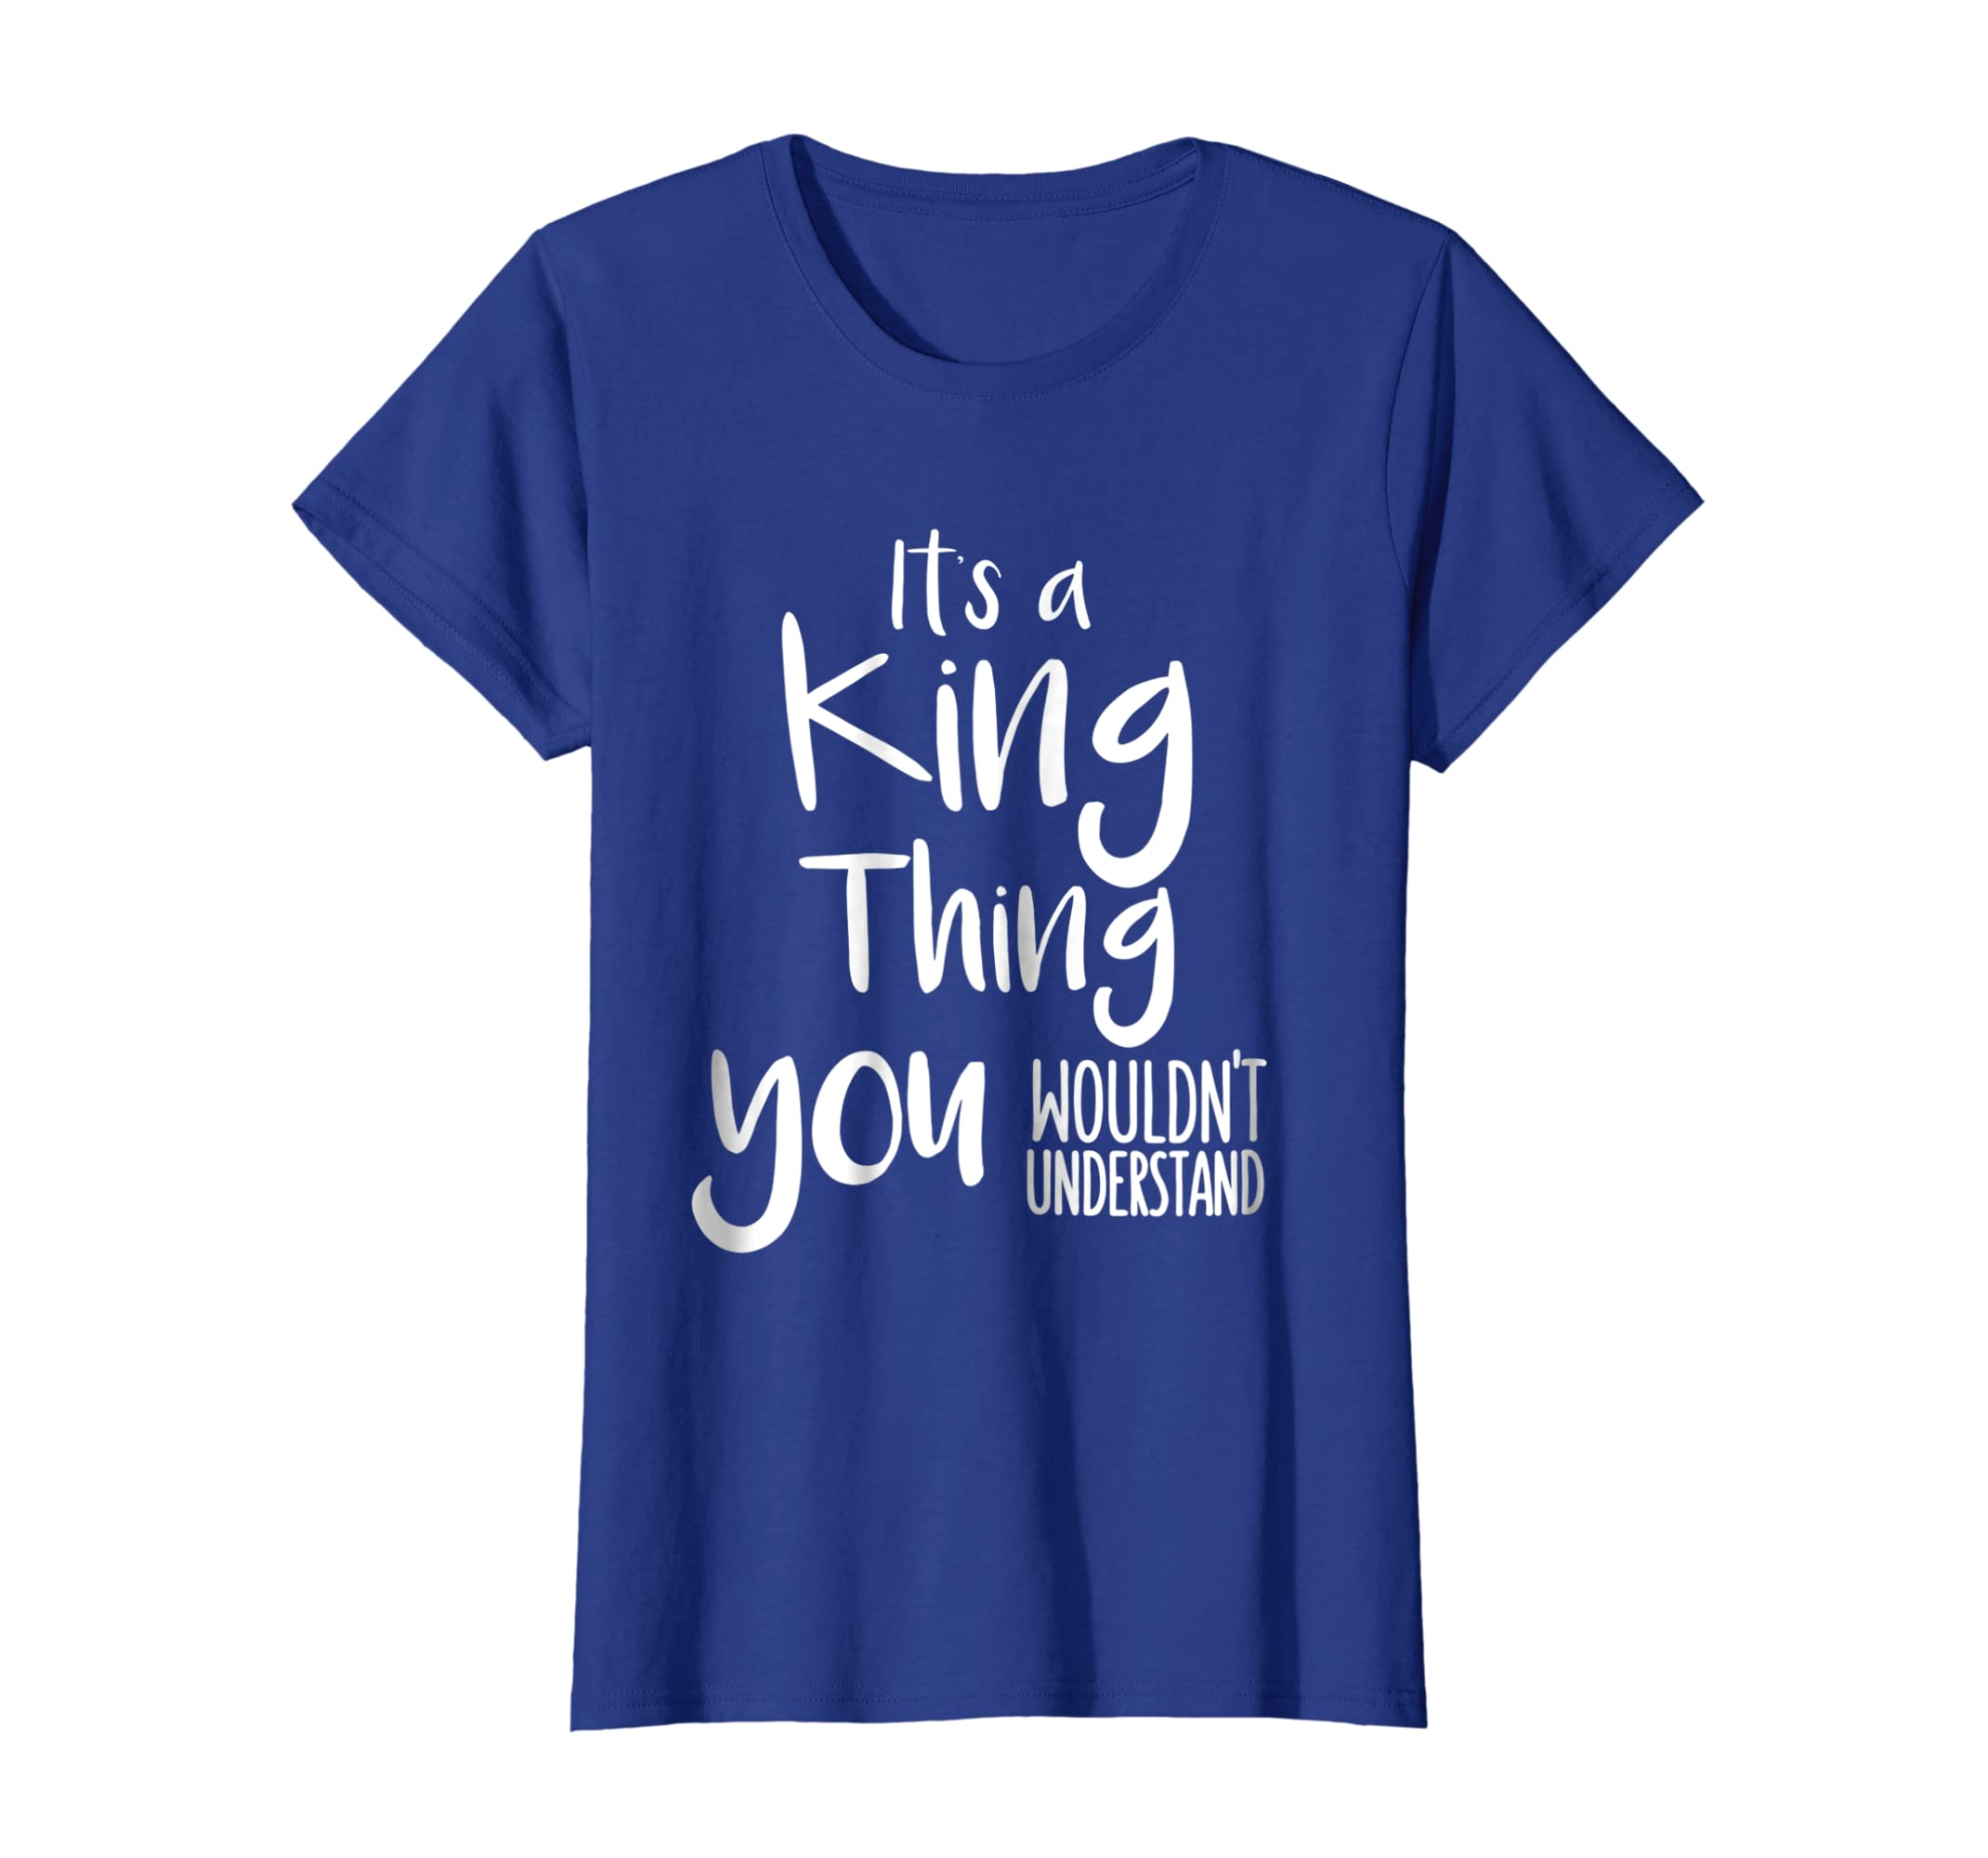 8d4cb6fe7 Amazon.com: Funny personalized Shirts: Family Name Shirts ITs a KING Tee:  Clothing